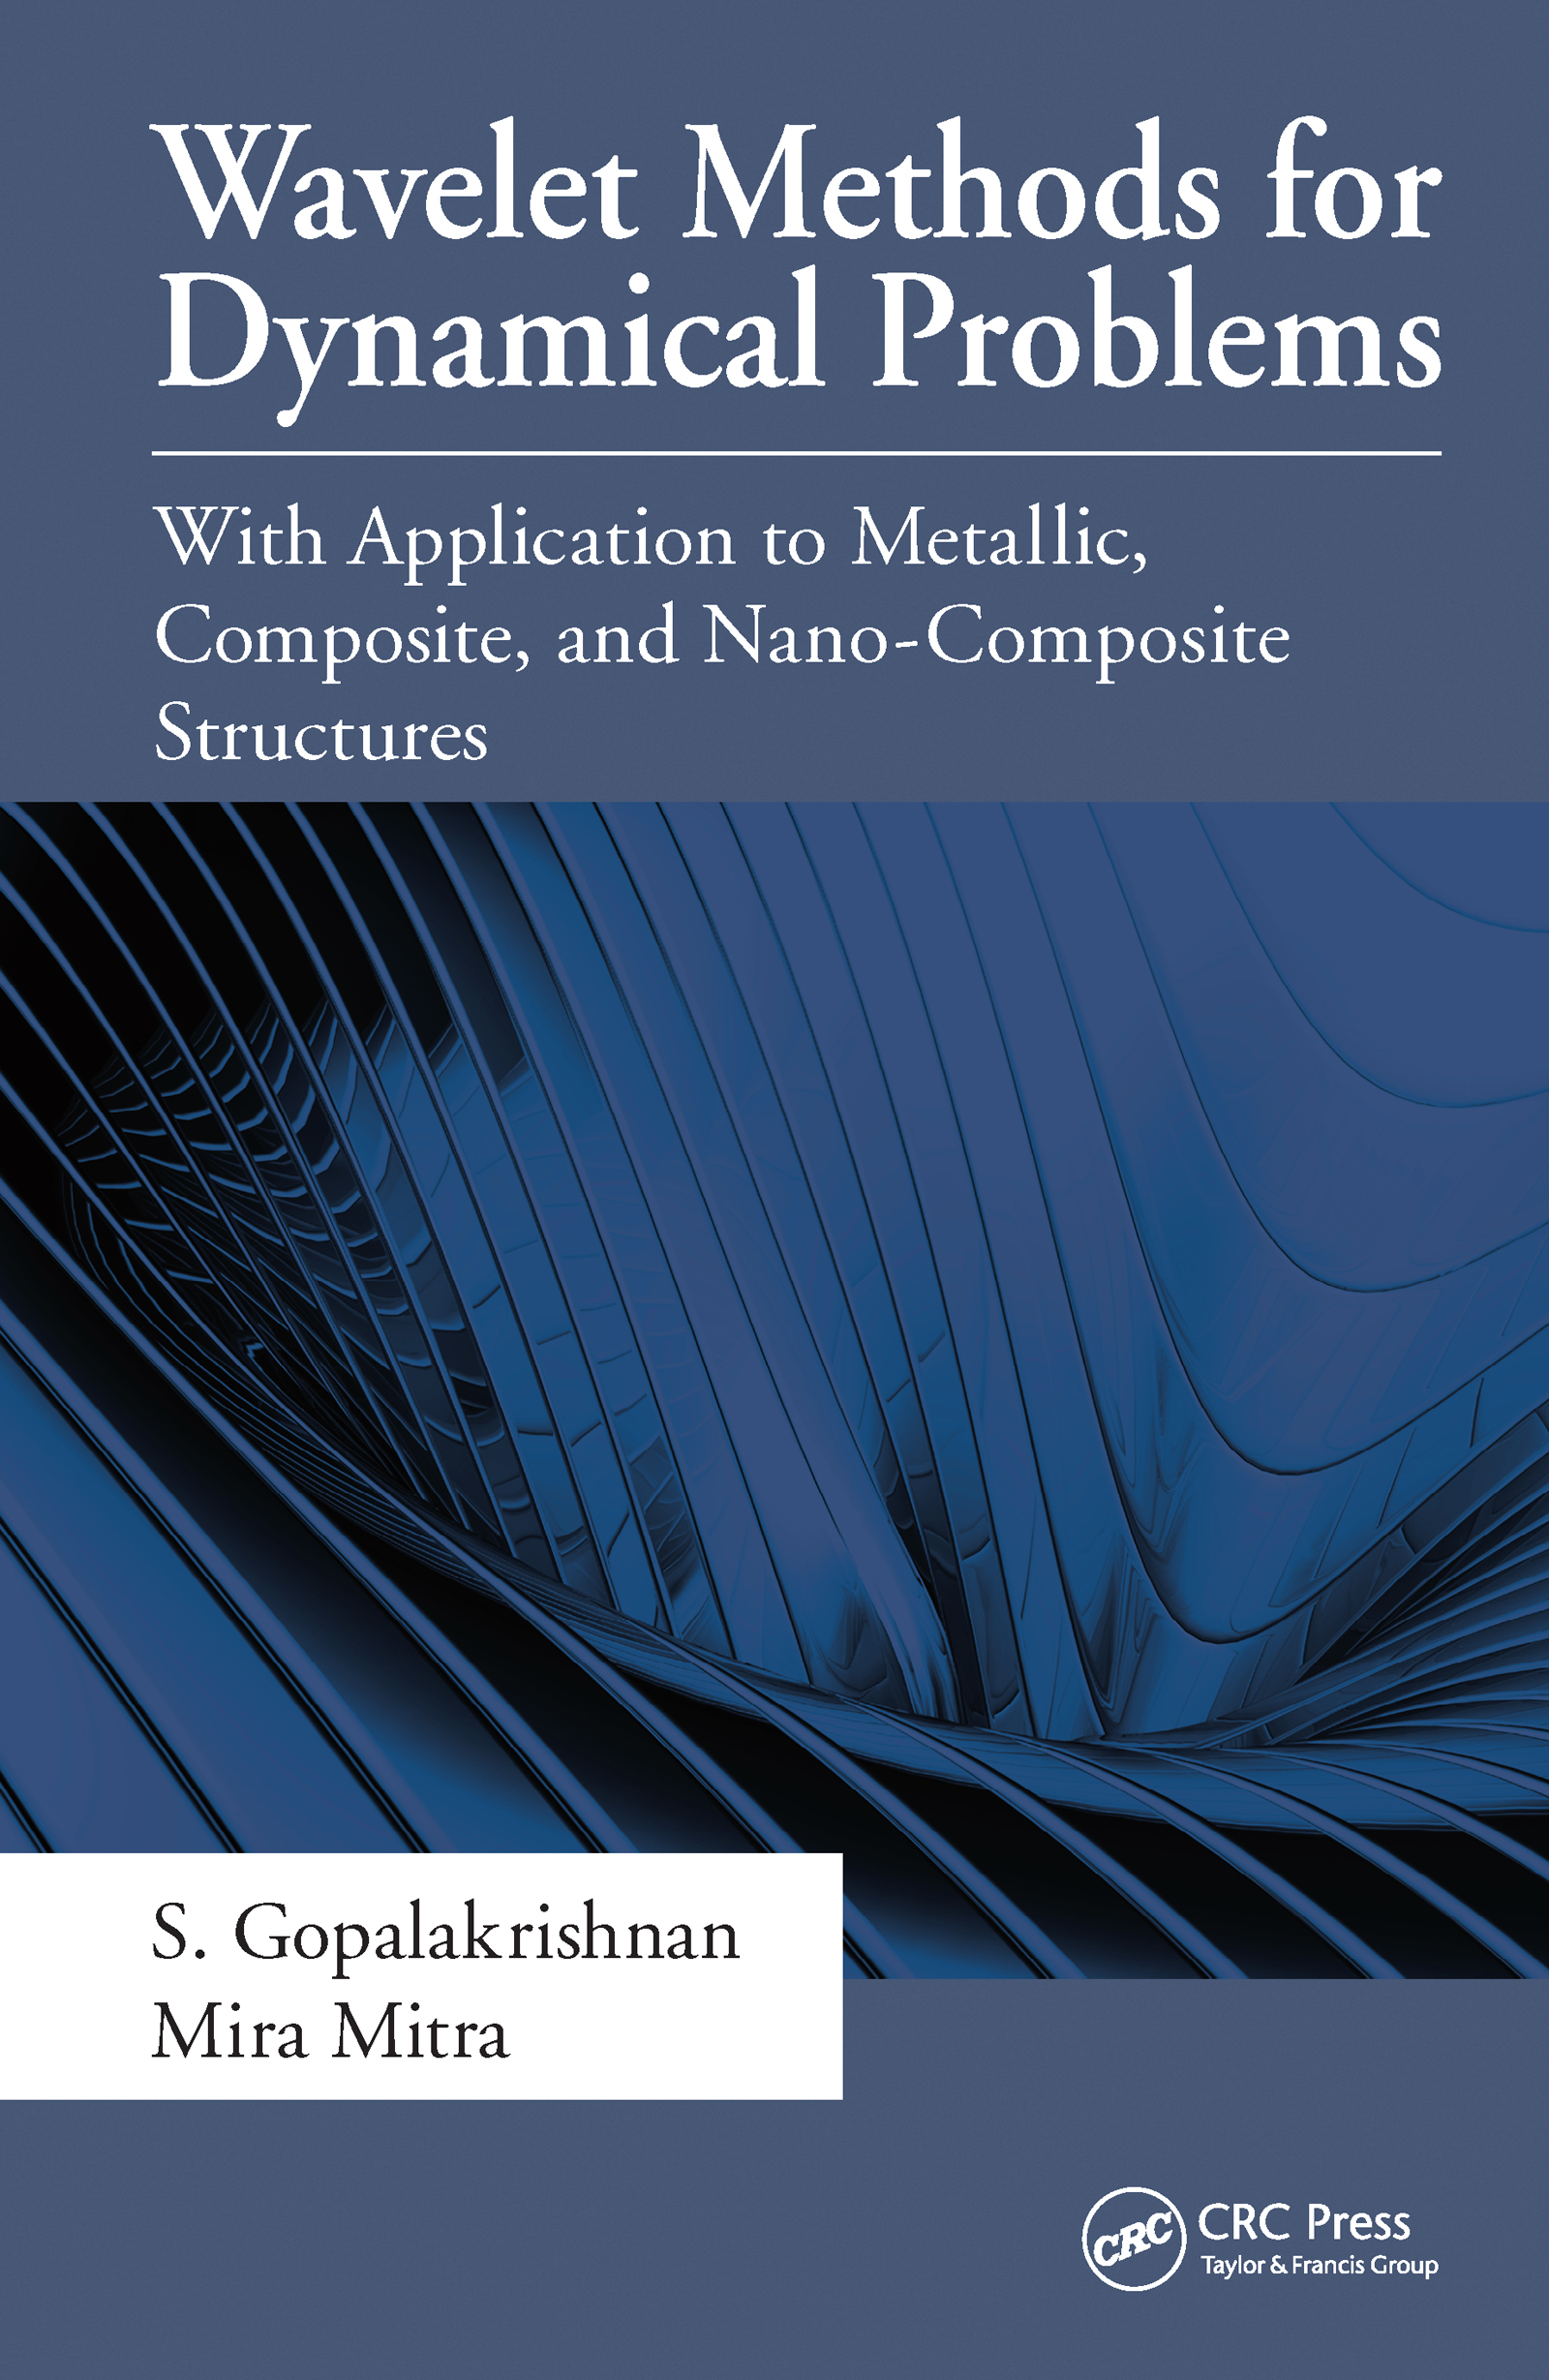 Wavelet Methods for Dynamical Problems: With Application to Metallic, Composite, and Nano-Composite Structures, 1st Edition (Hardback) book cover